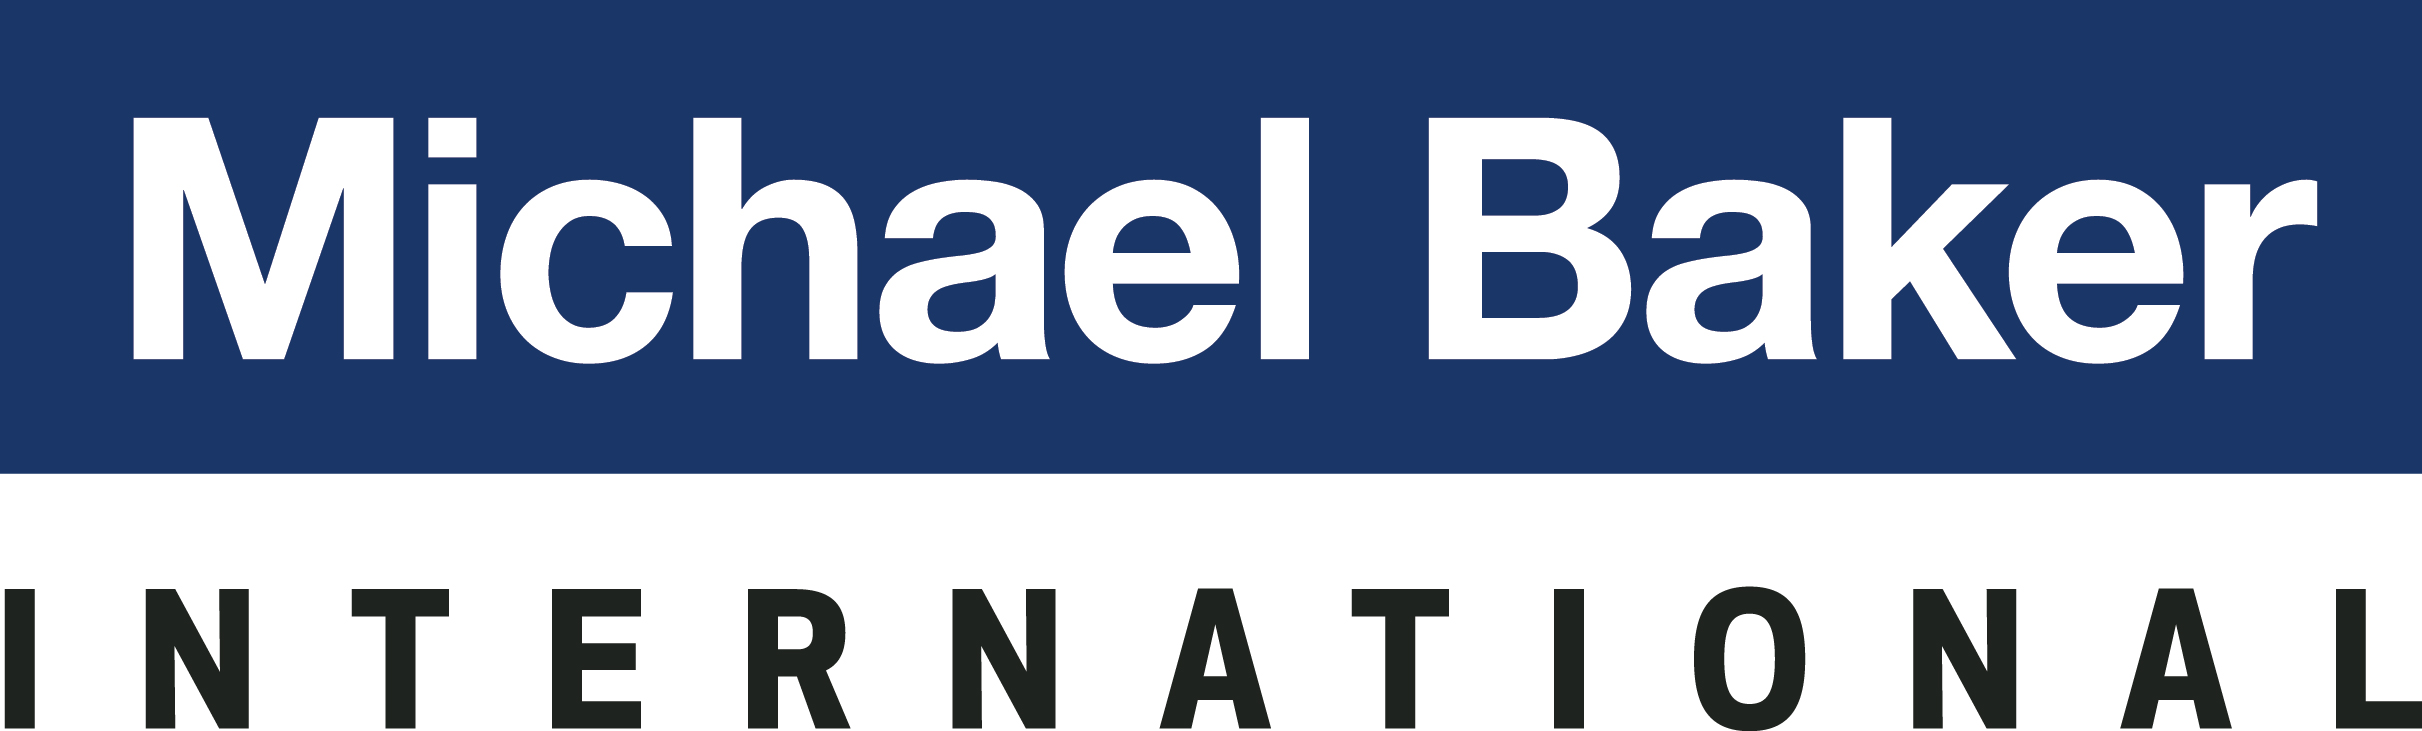 Michael_Baker_International_logo_(color).jpg